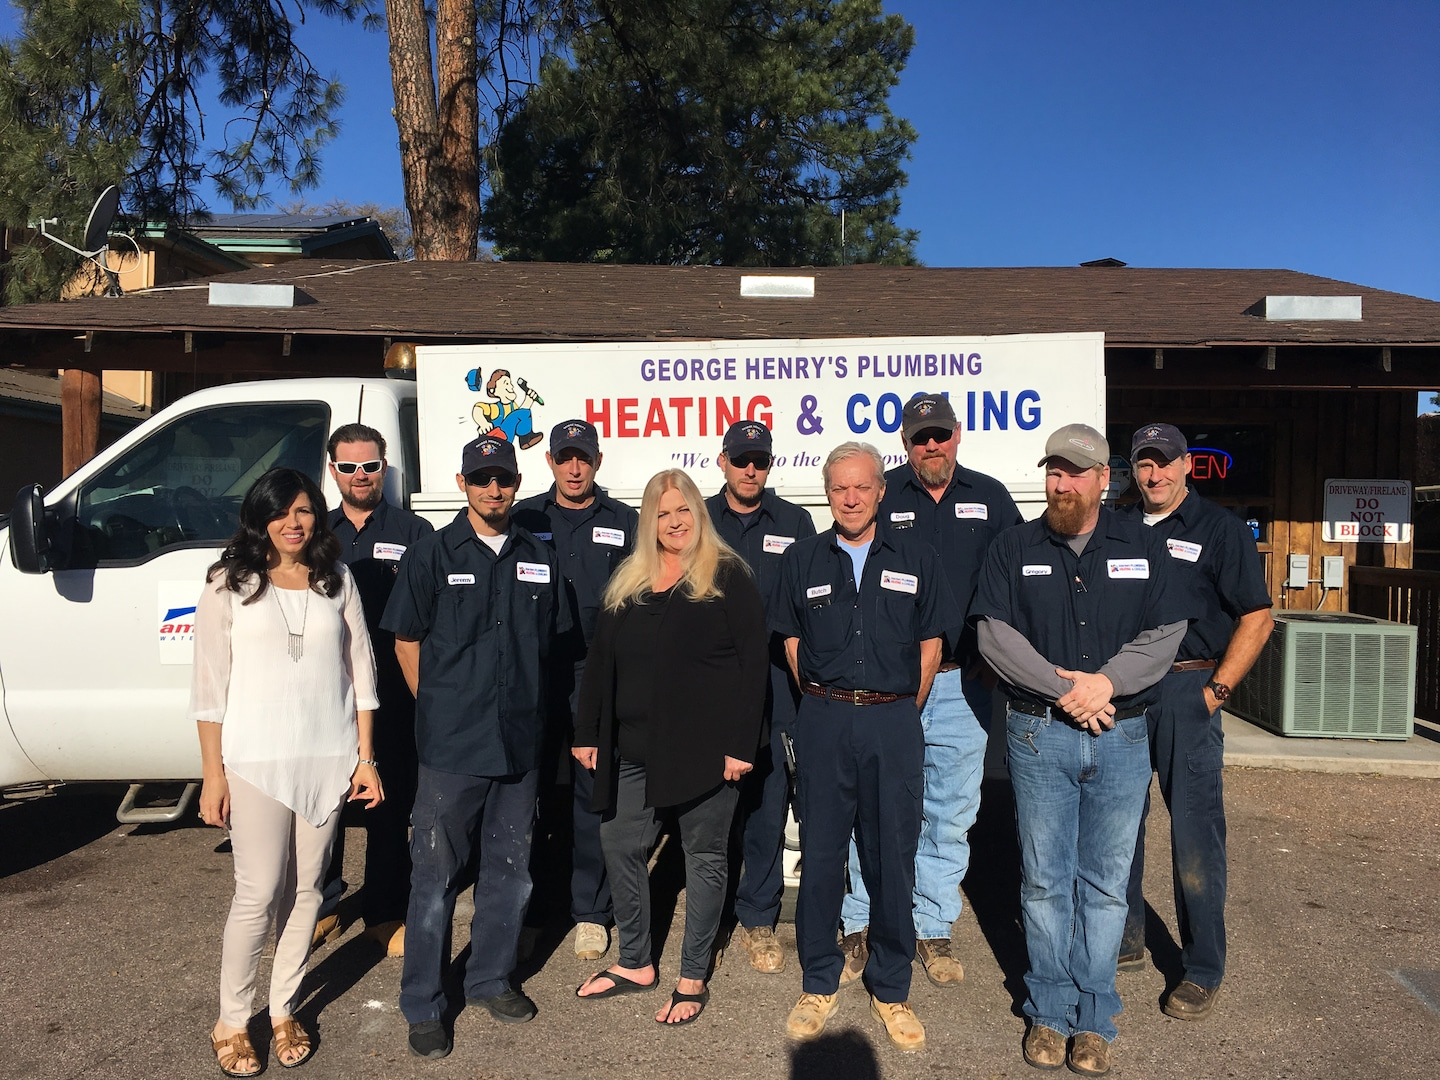 George Henry's Plumbing, Heating, and Cooling LLC